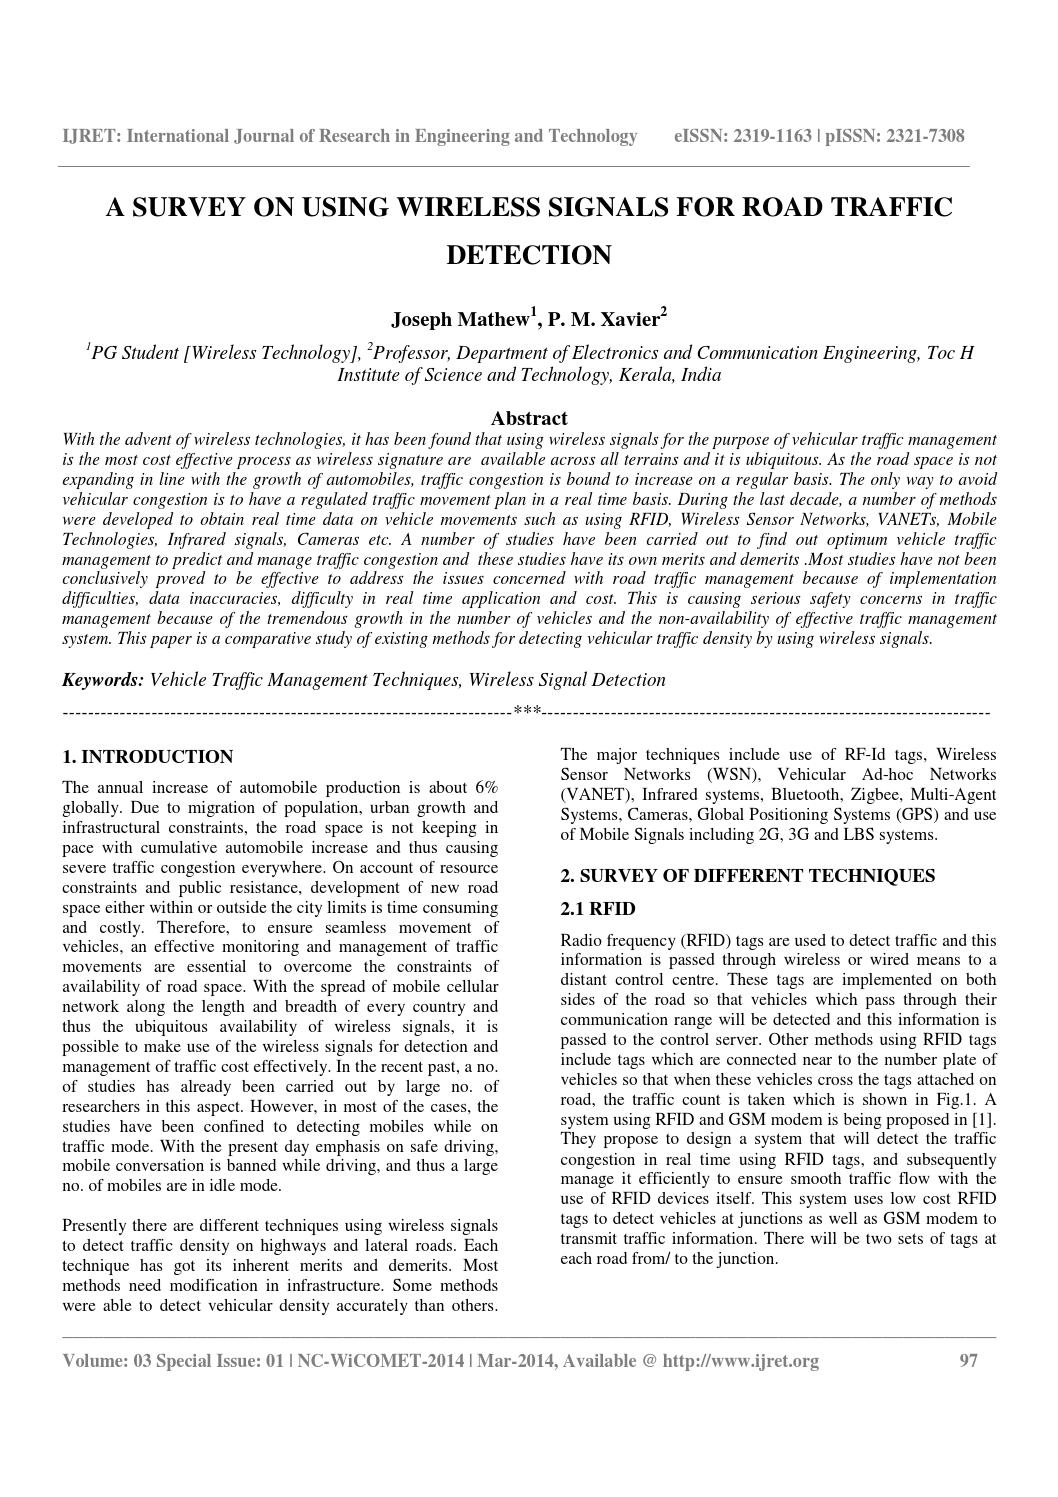 A survey on using wireless signals for road traffic detection by